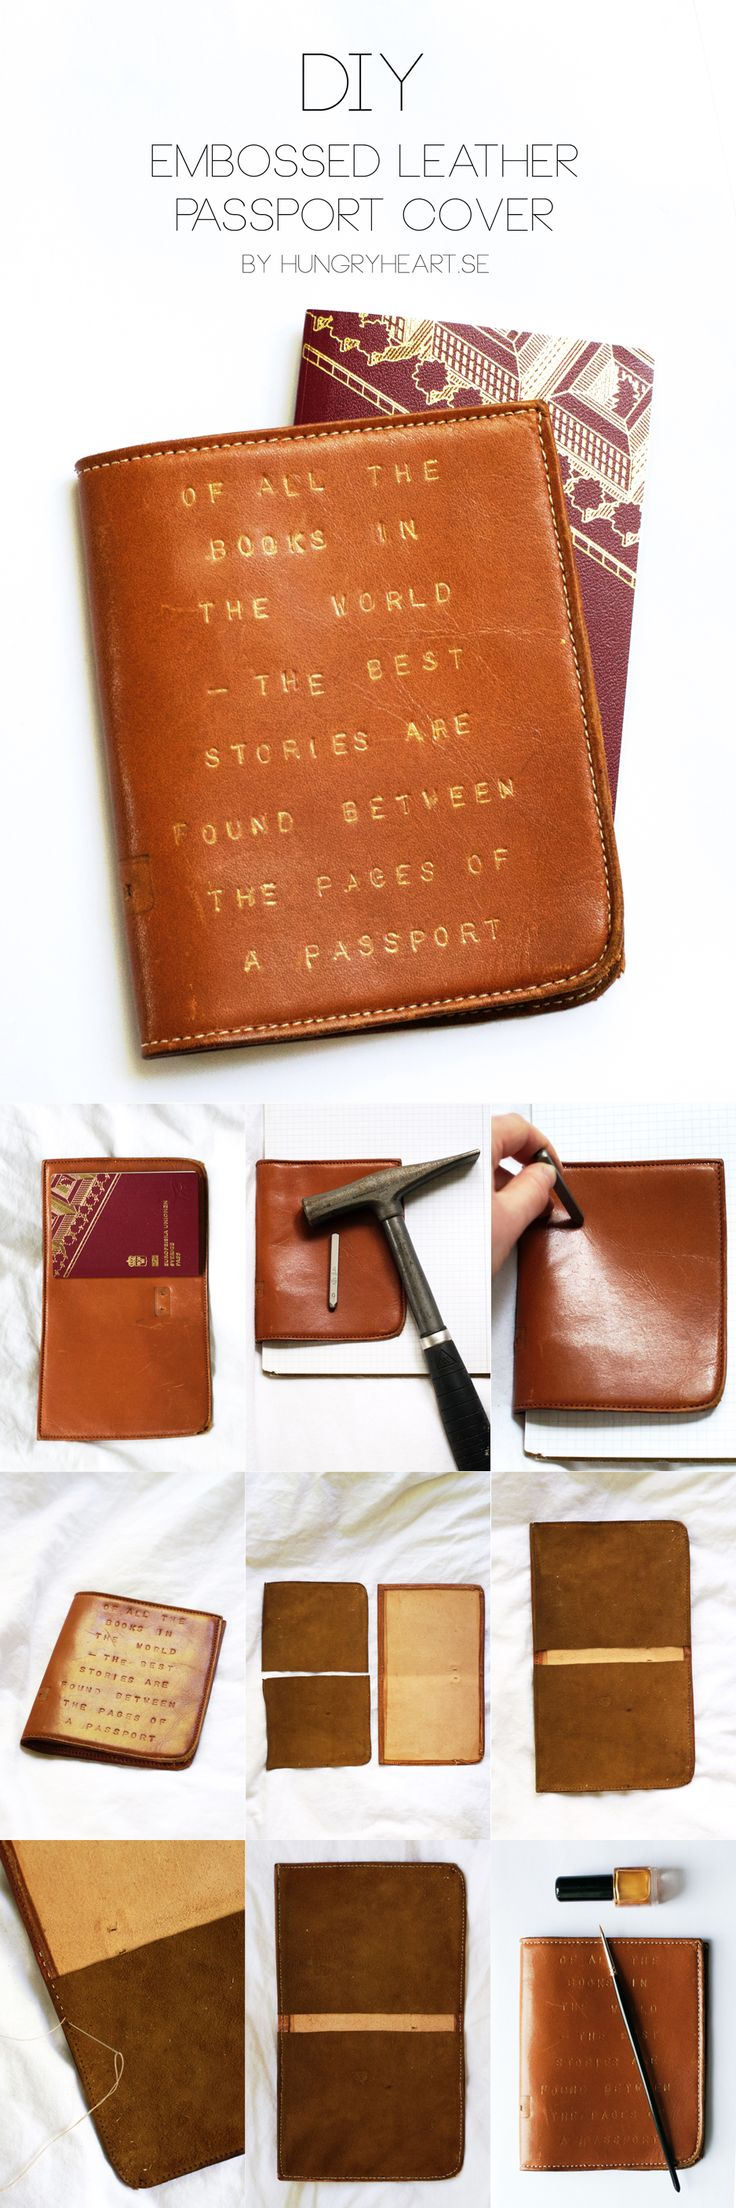 DIY Embossed Leather Passport Cover Tutorial | HungryHeart.se